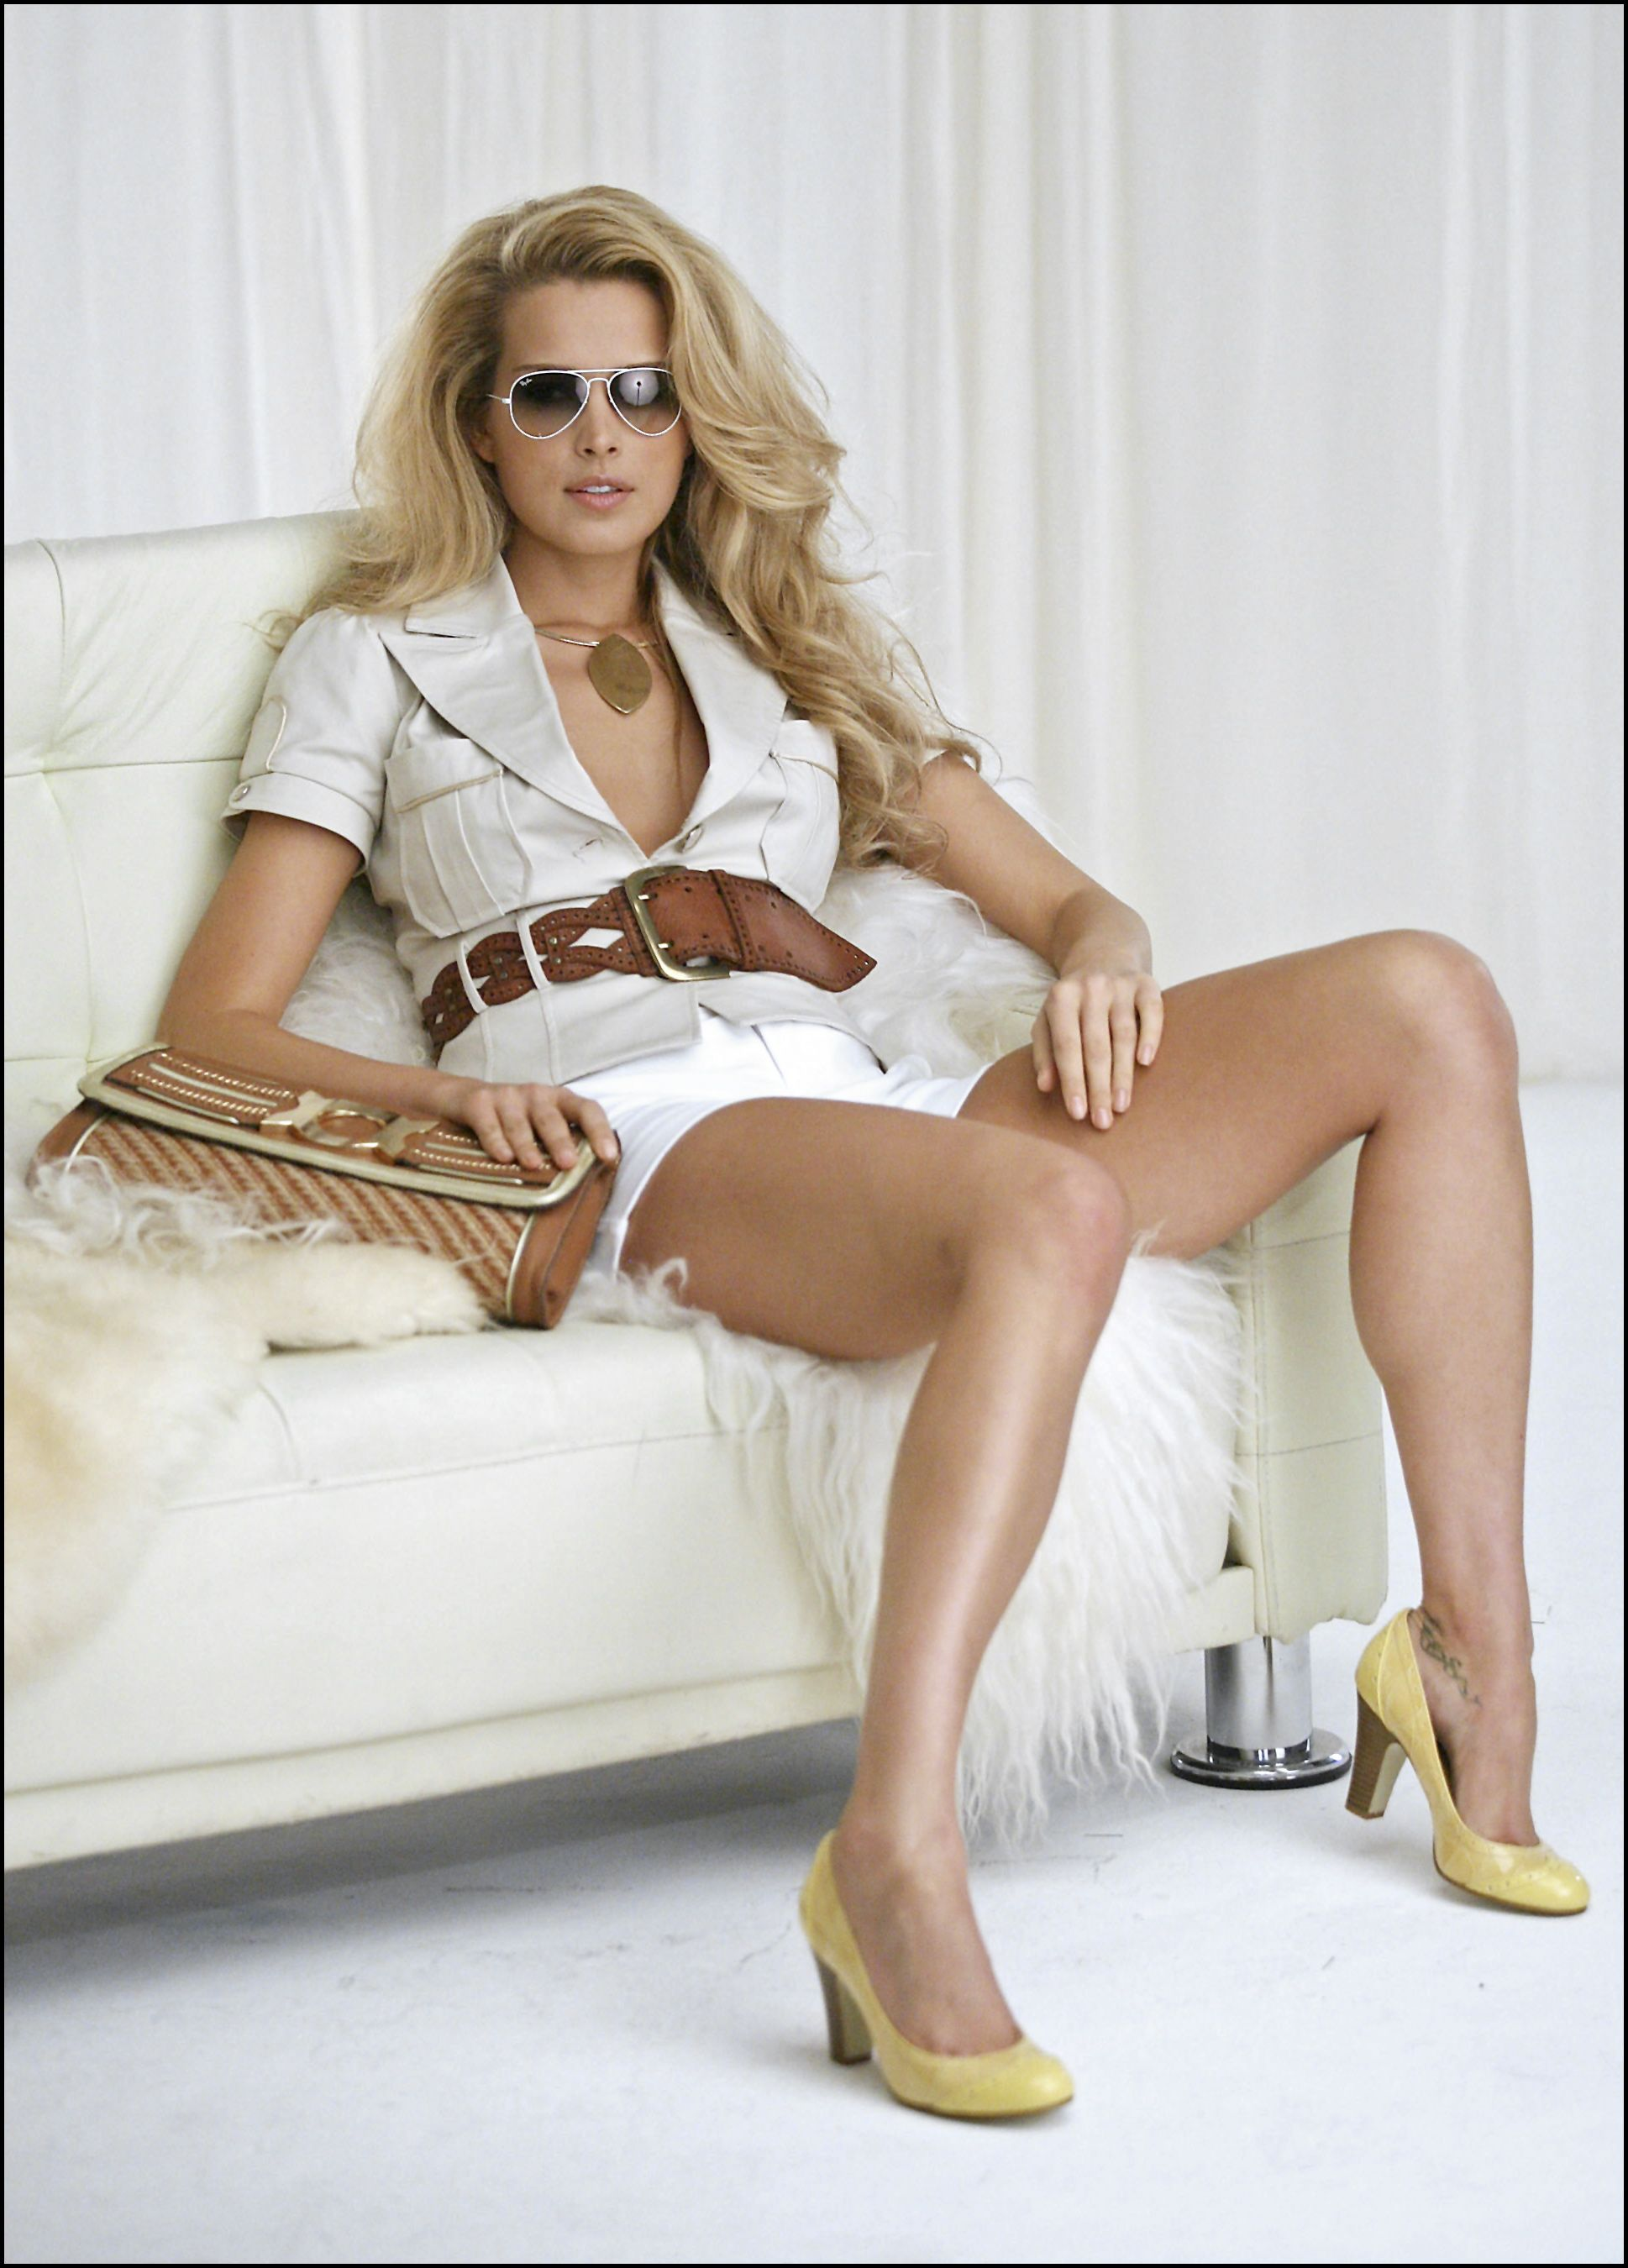 54462_Celebutopia-Petra_Nemcova_behind_the_scenes_on_her_new_photo_shoot_for_the_clothing_company_Rampage-03_122_570lo.jpeg